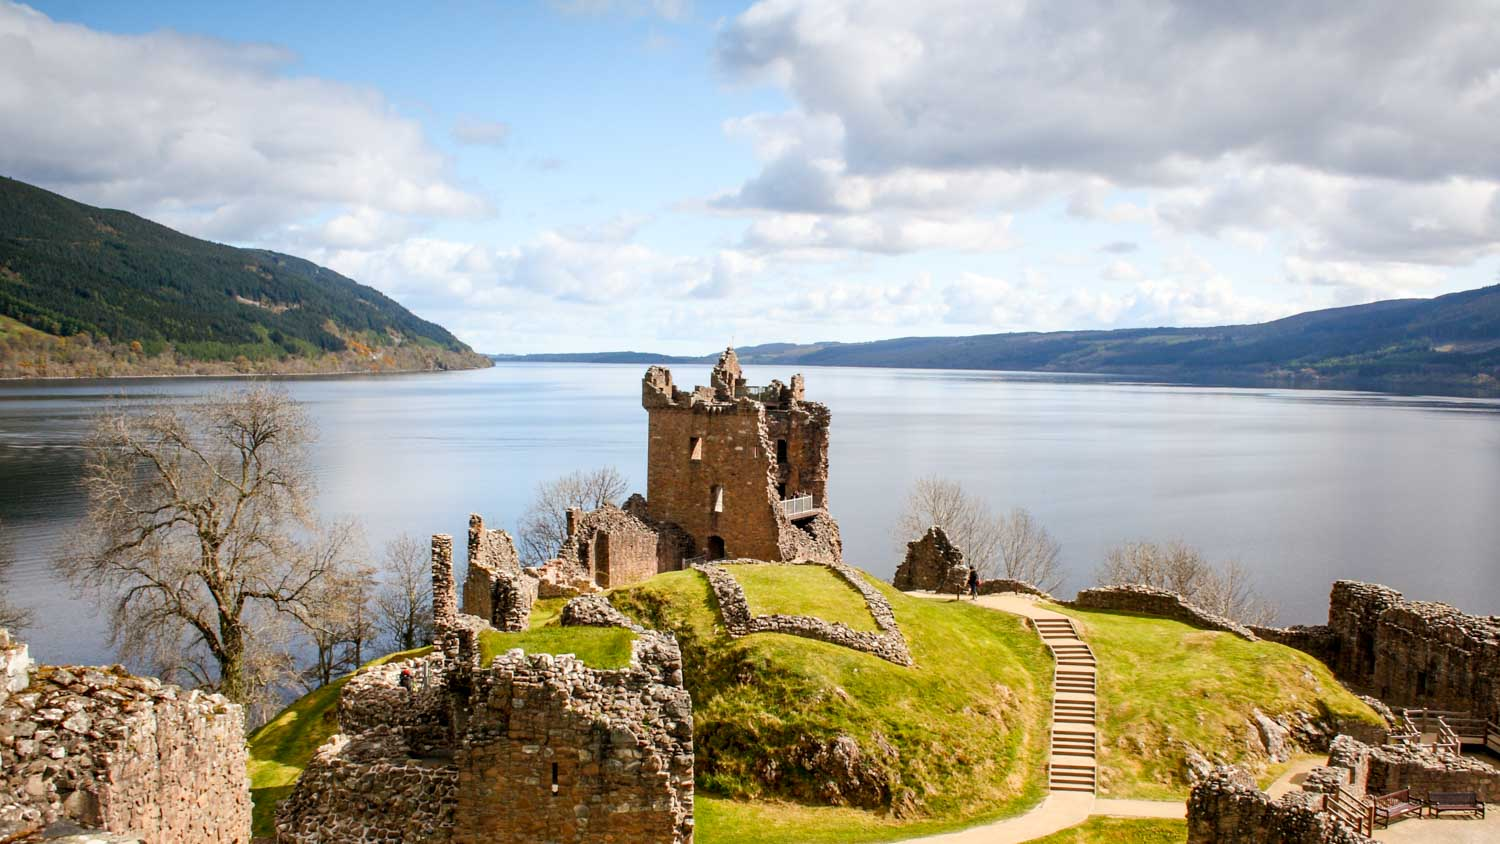 Britain & Ireland Grandeur | Urquhart Castle, Loch Ness, Scotland, UK